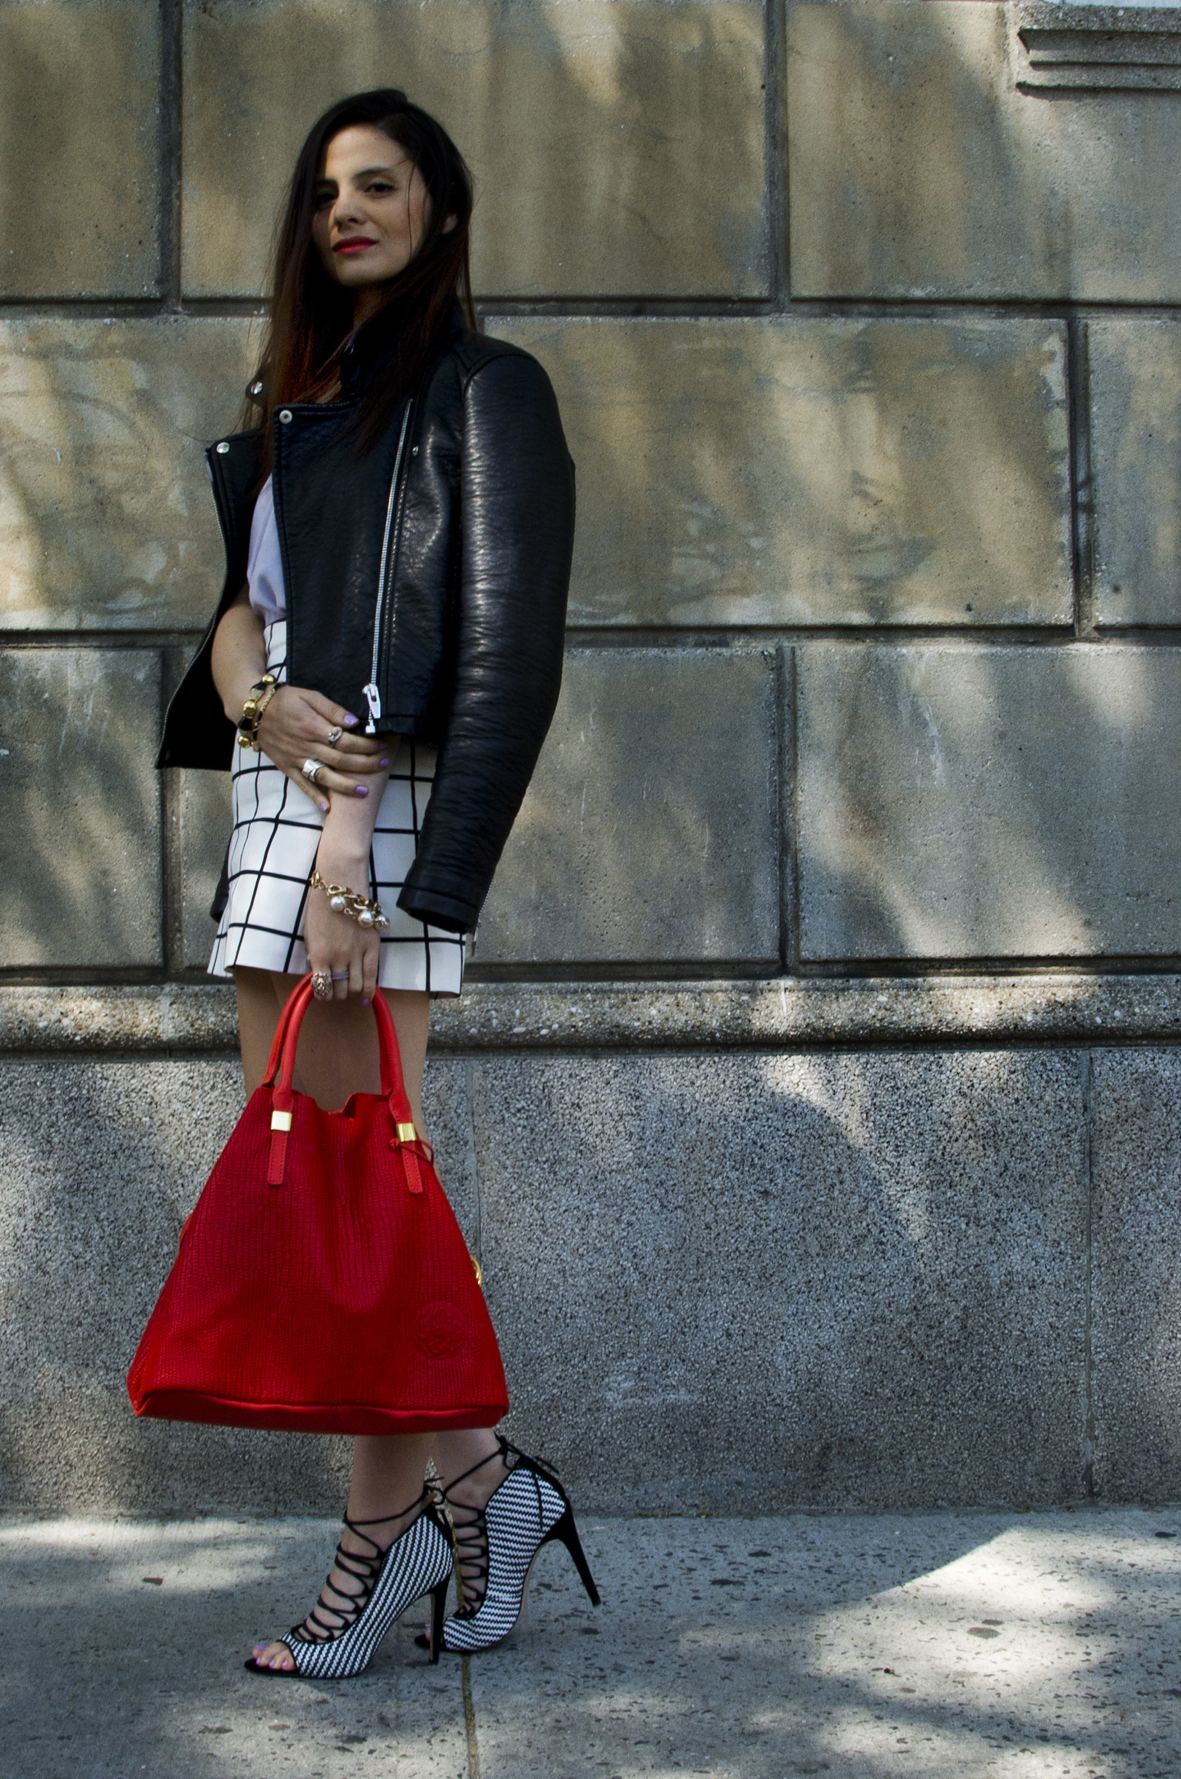 22 Jimmy Maxim - 6